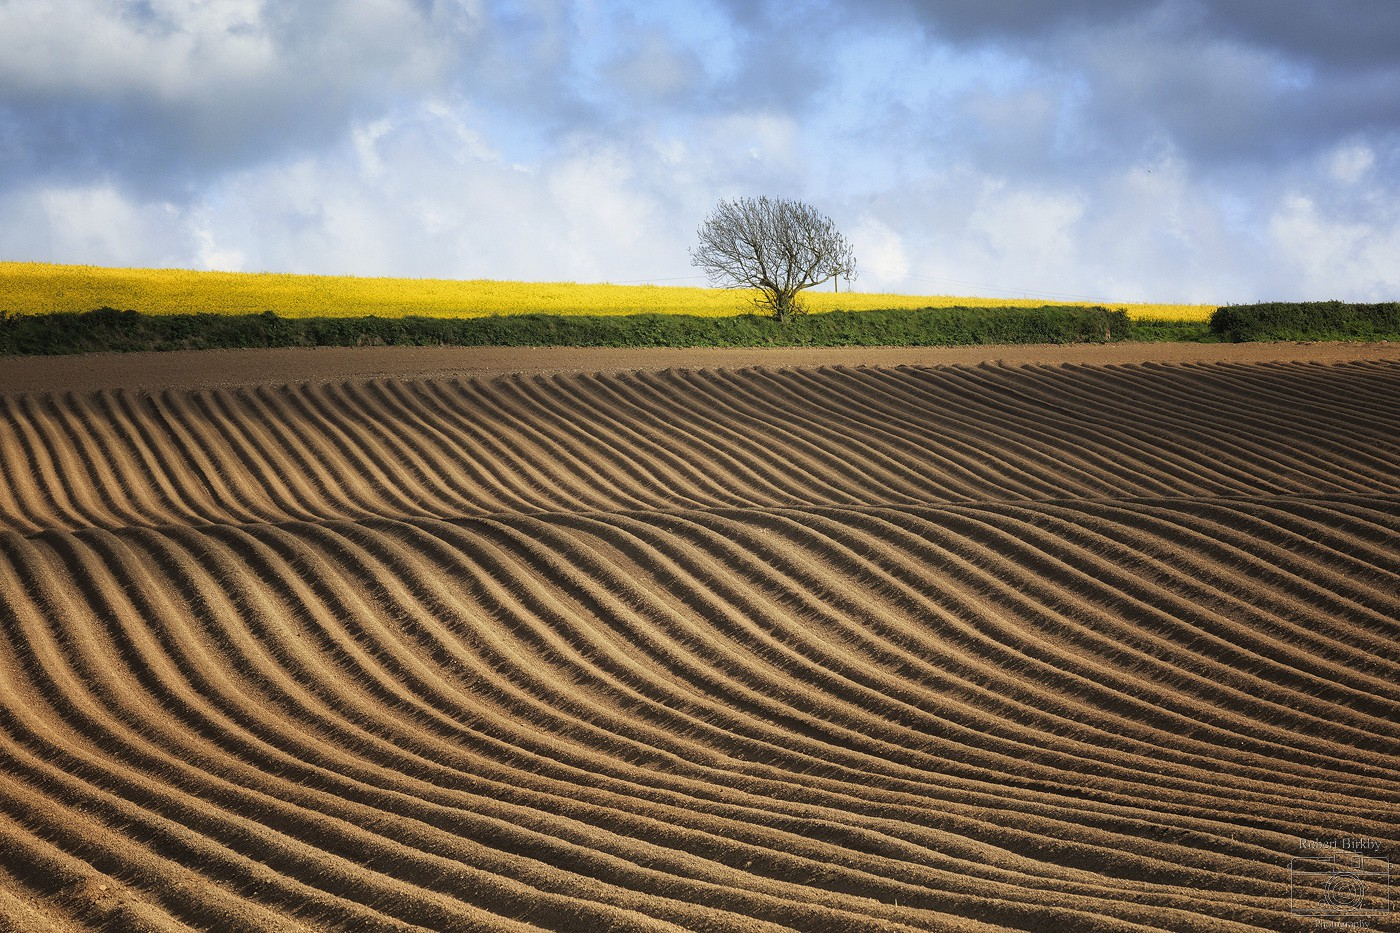 Wavy Lines - England & Wales